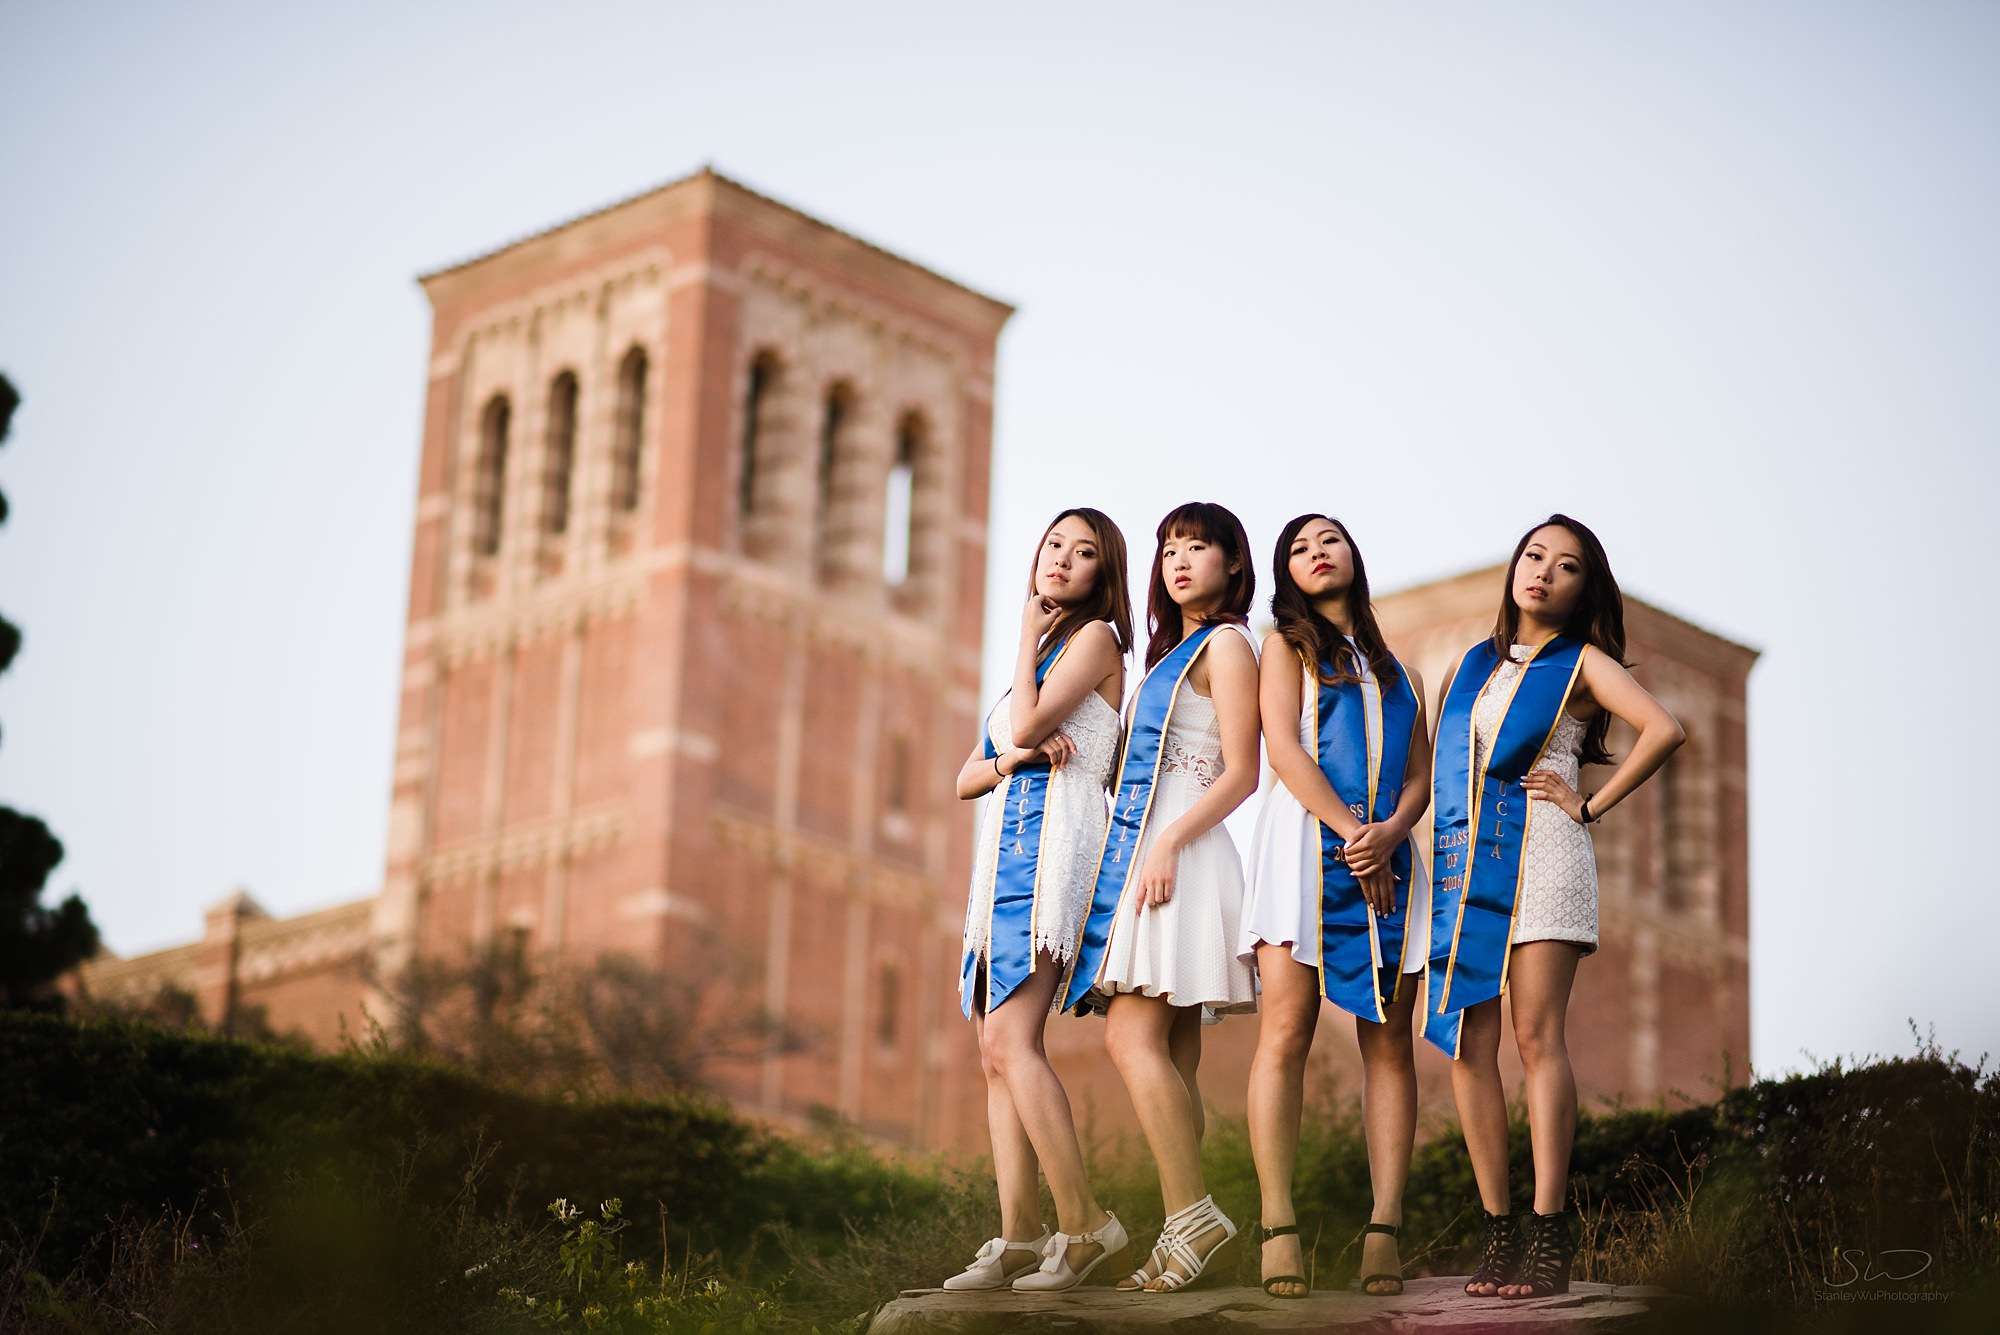 epic graduation senior portrait of a group of badass girls posing in front of royce hall at ucla in los angeles